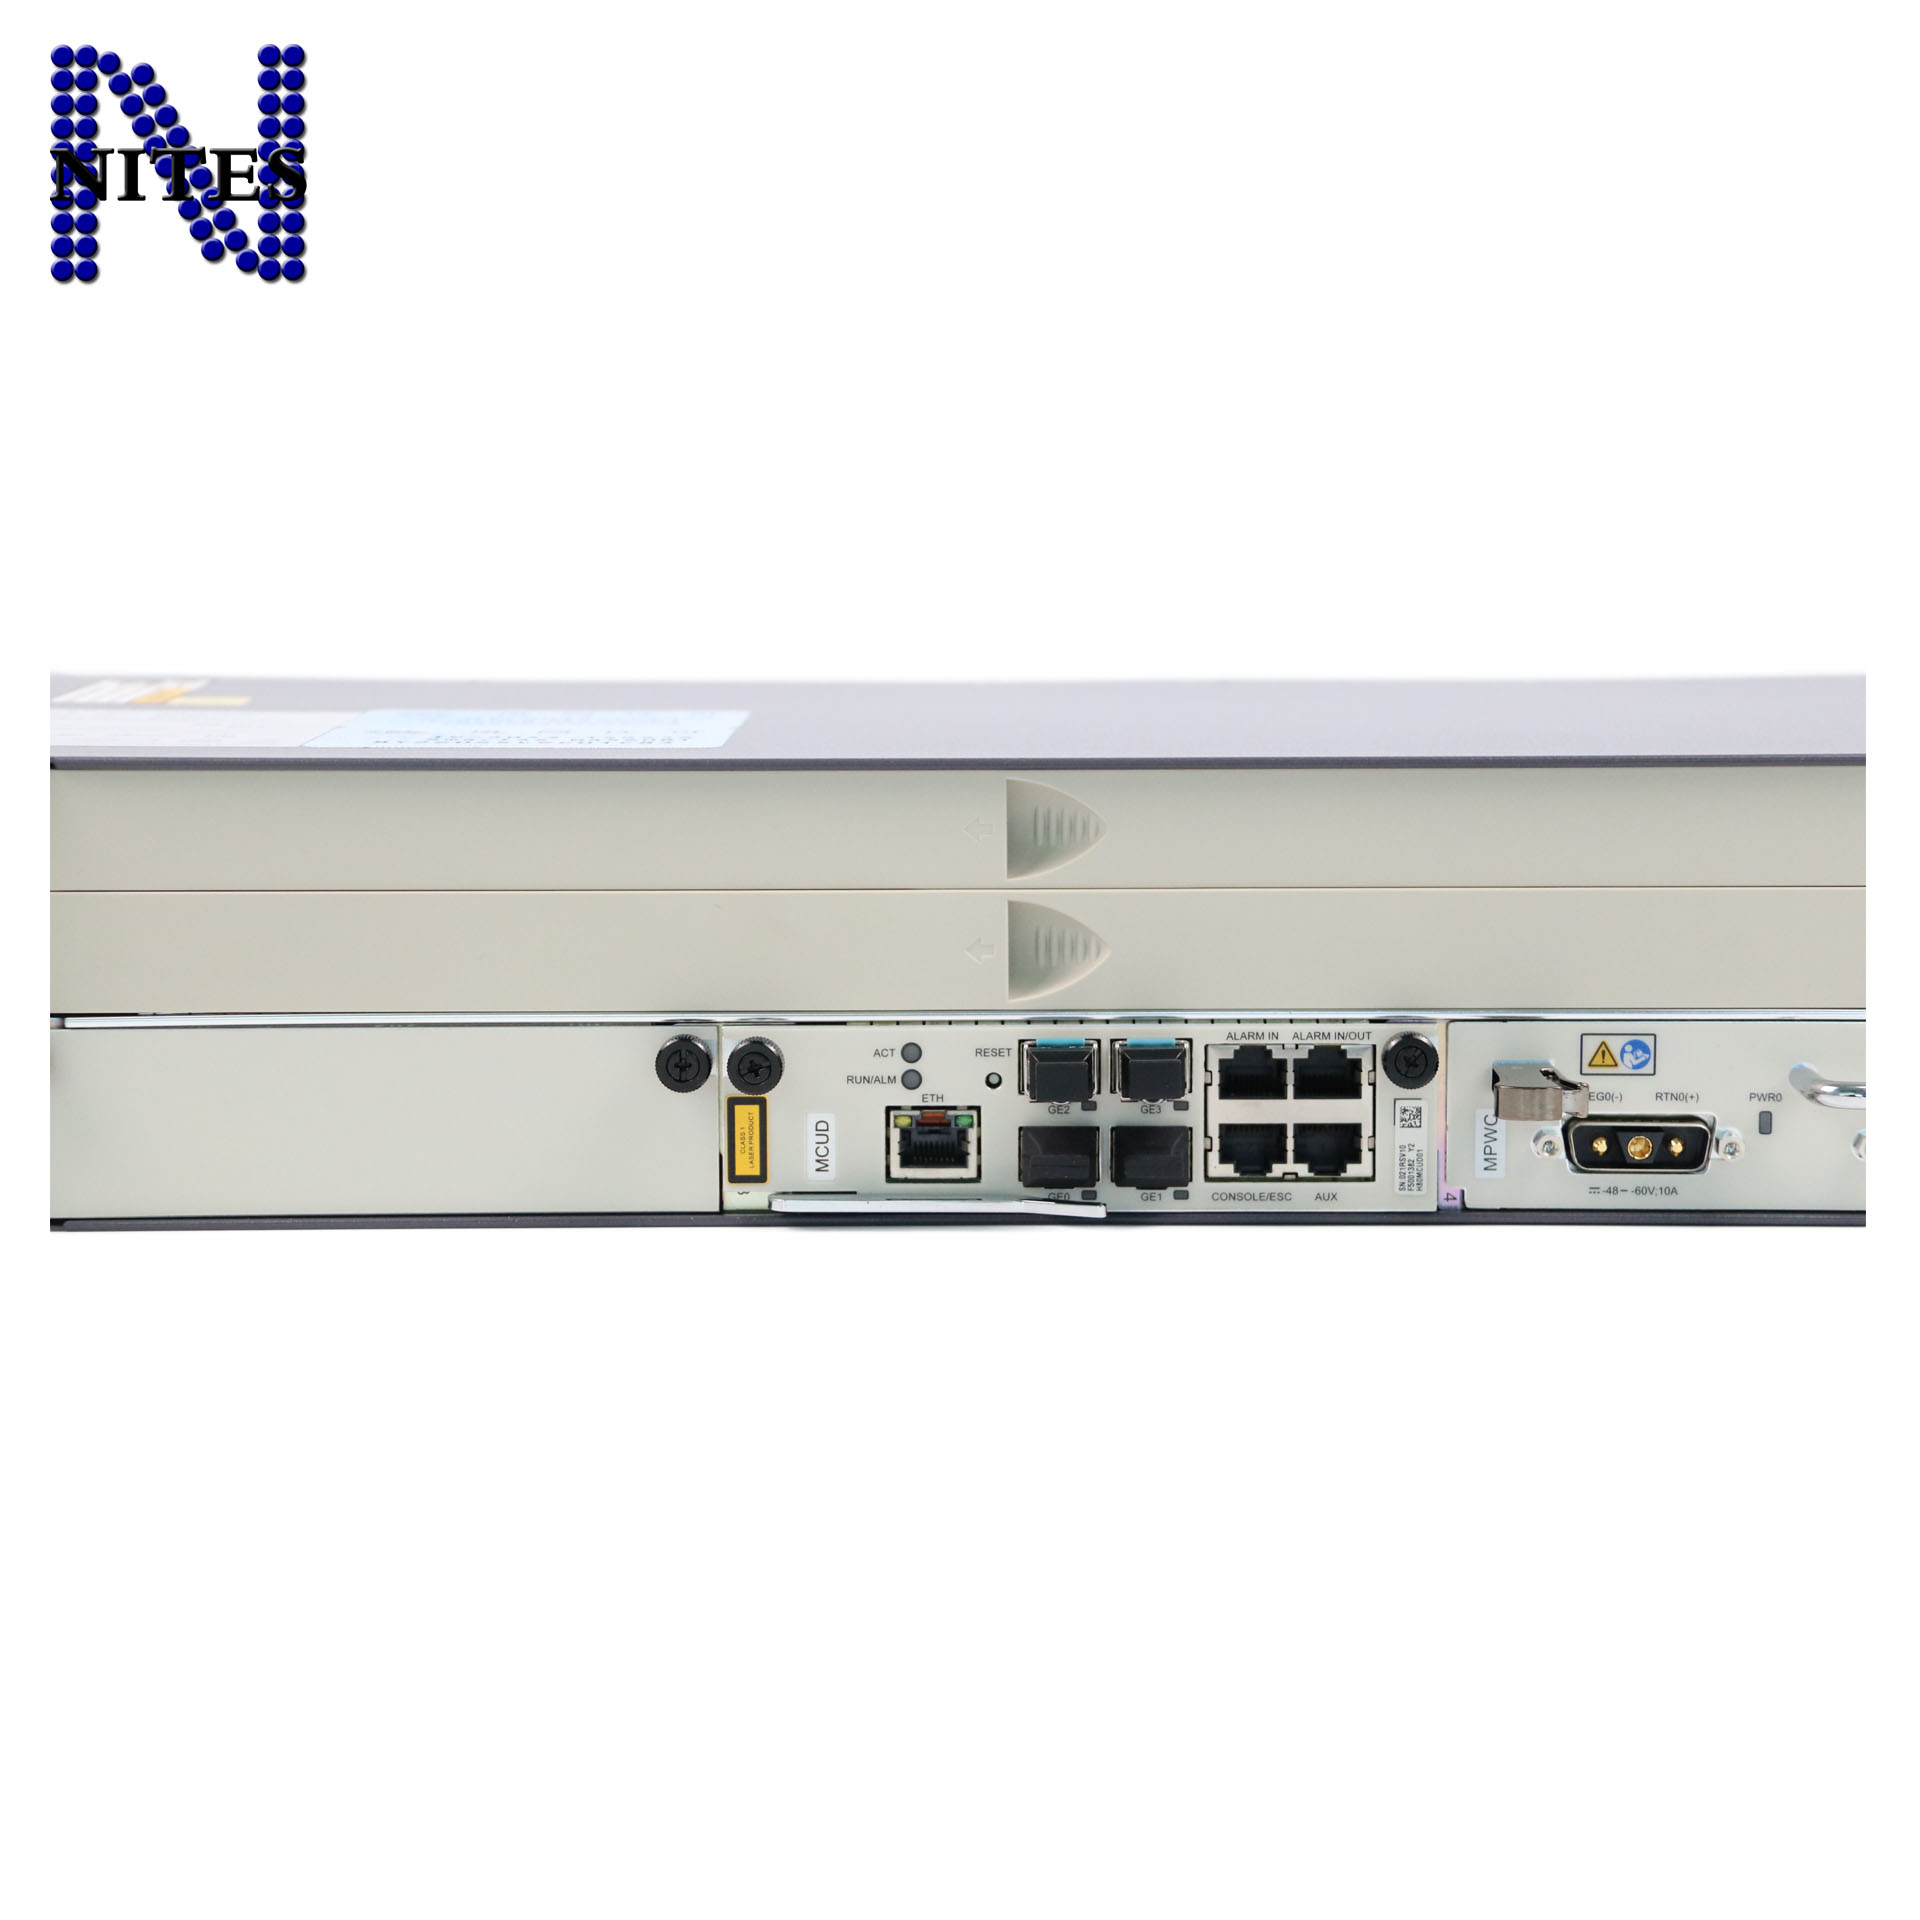 Ma5608t Olt Original Hua Wei 16 Ports Gpon Board With 16 Pcs Gpfd Class C Ma5683t Sfp Modules For Ma5680t